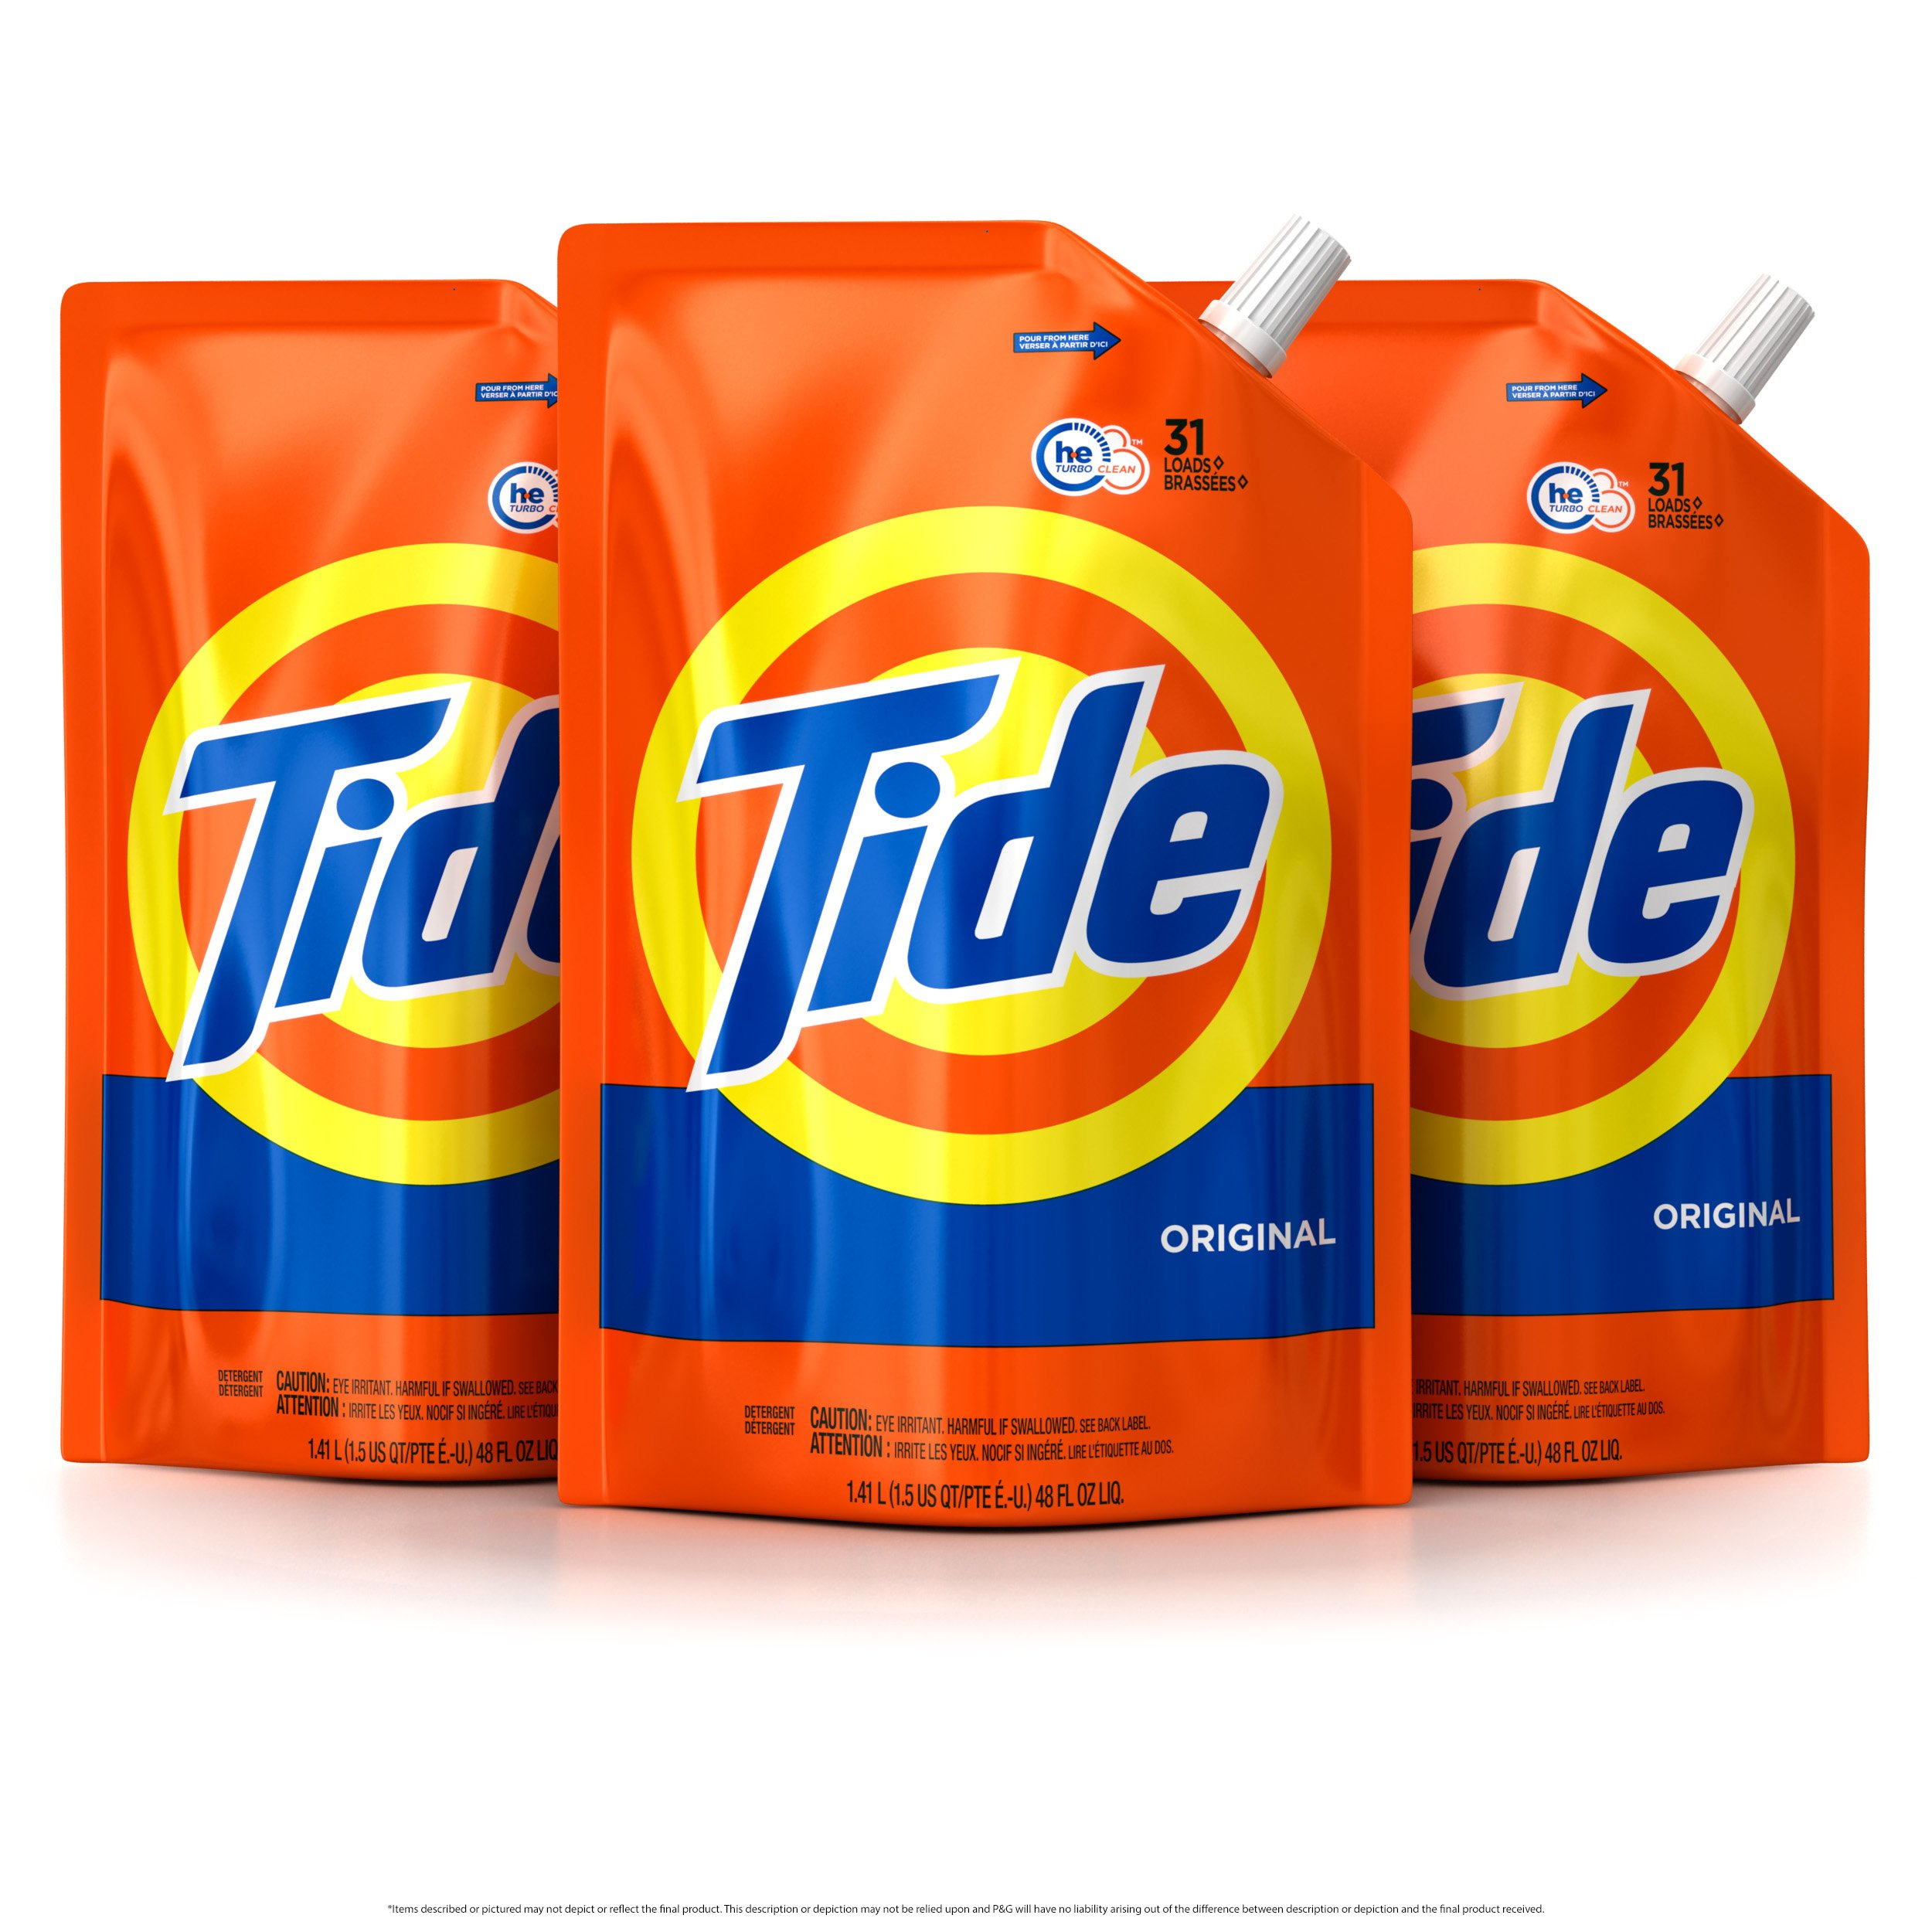 Tide Liquid Laundry Detergent Smart Pouch, Original Scent, HE Turbo Clean, Pack of